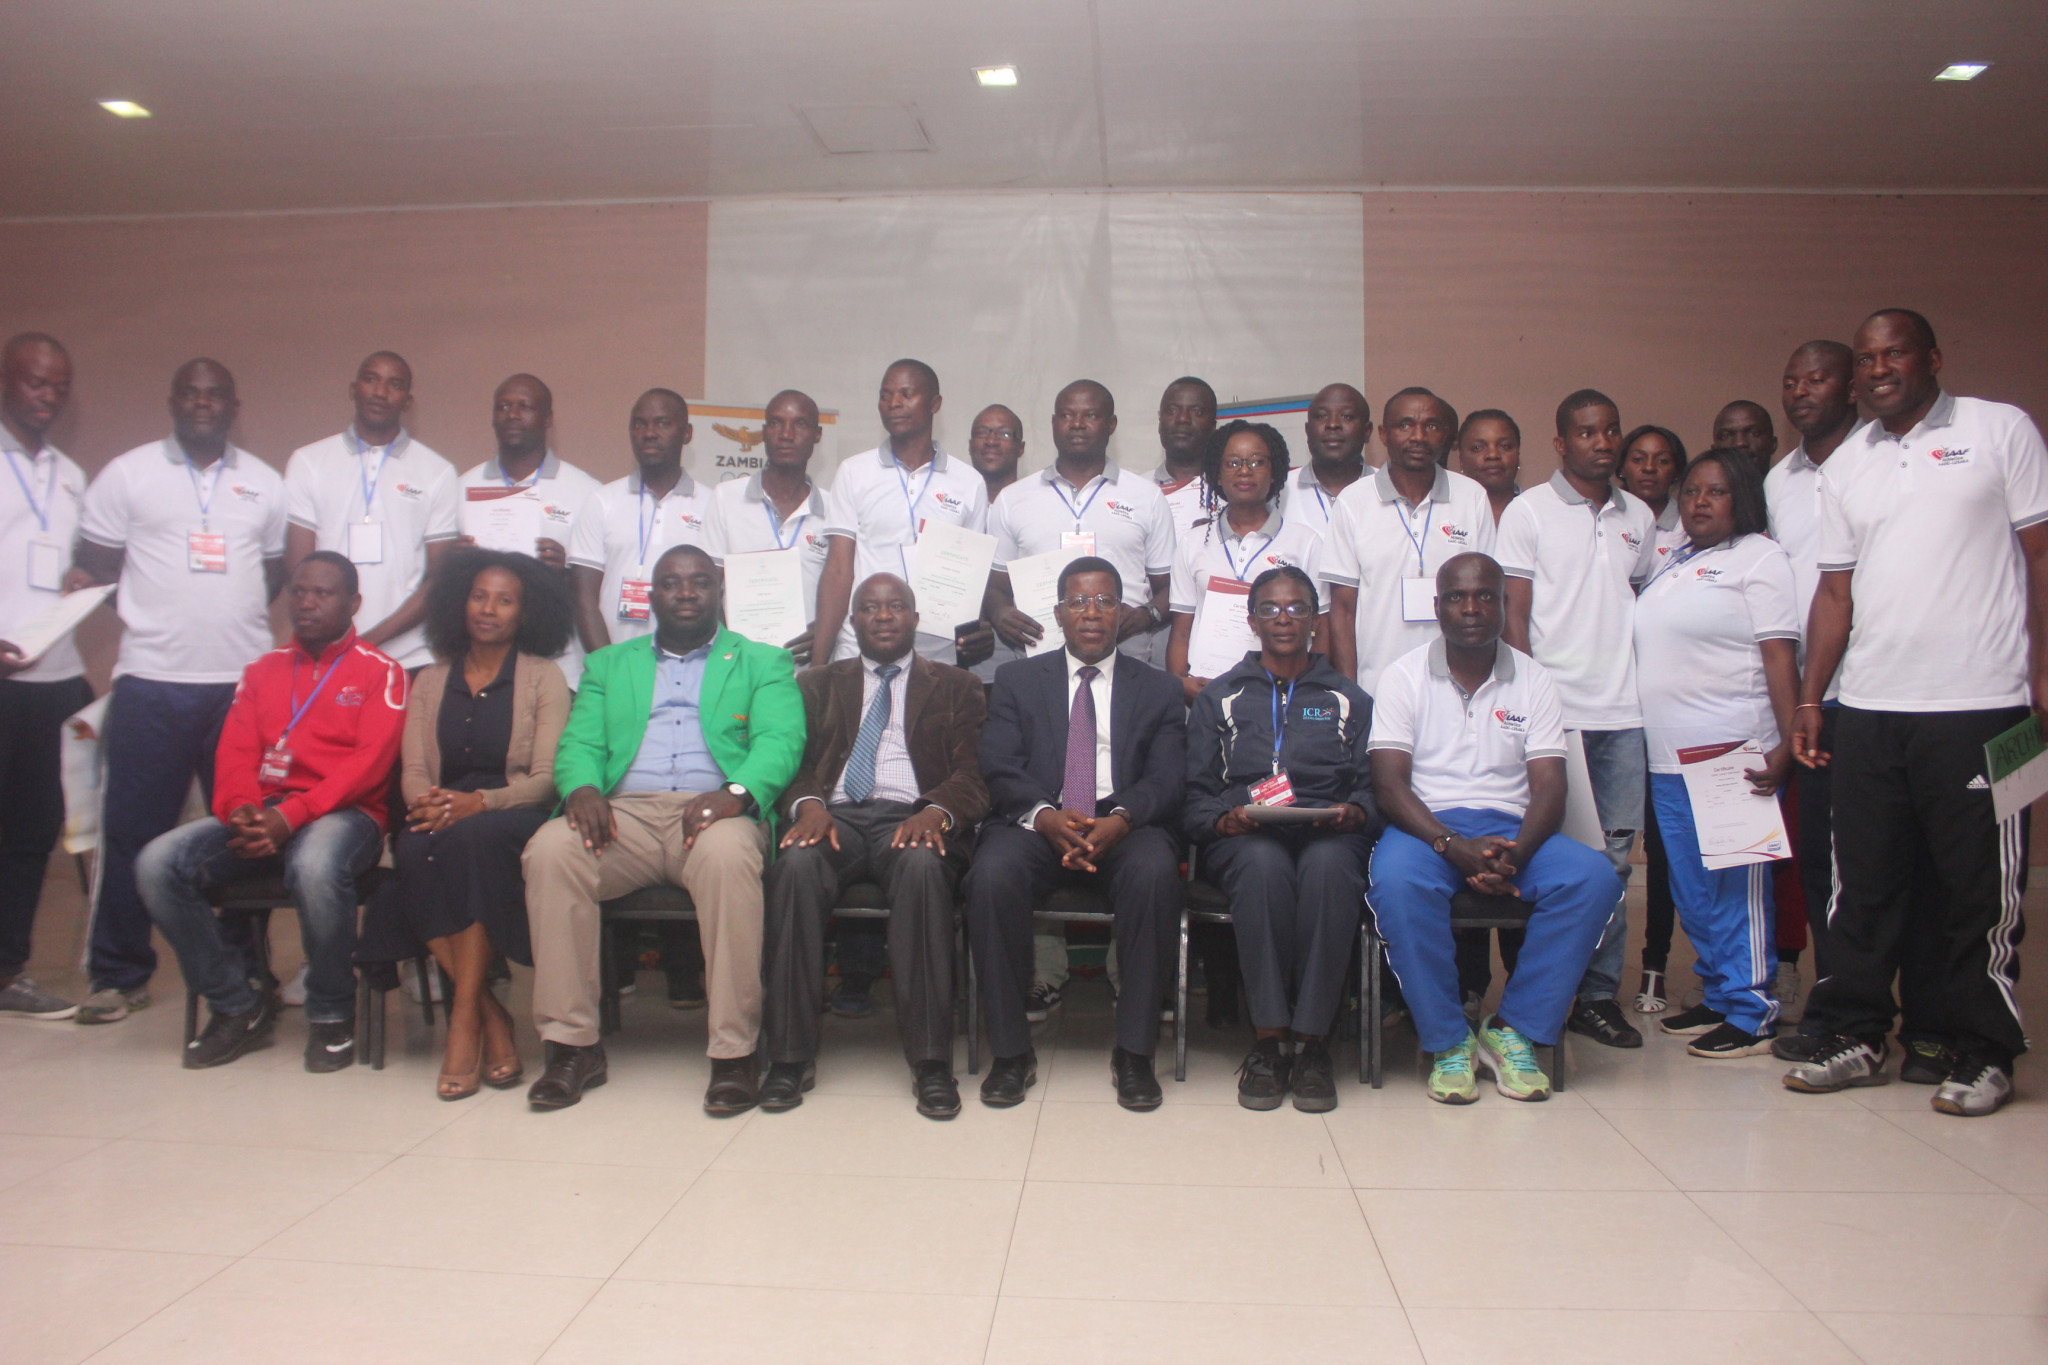 There were 24 coaches from across Zambia who took part in the Zambia Amateur Athletics Association training programme in Lusaka ©NOCZ